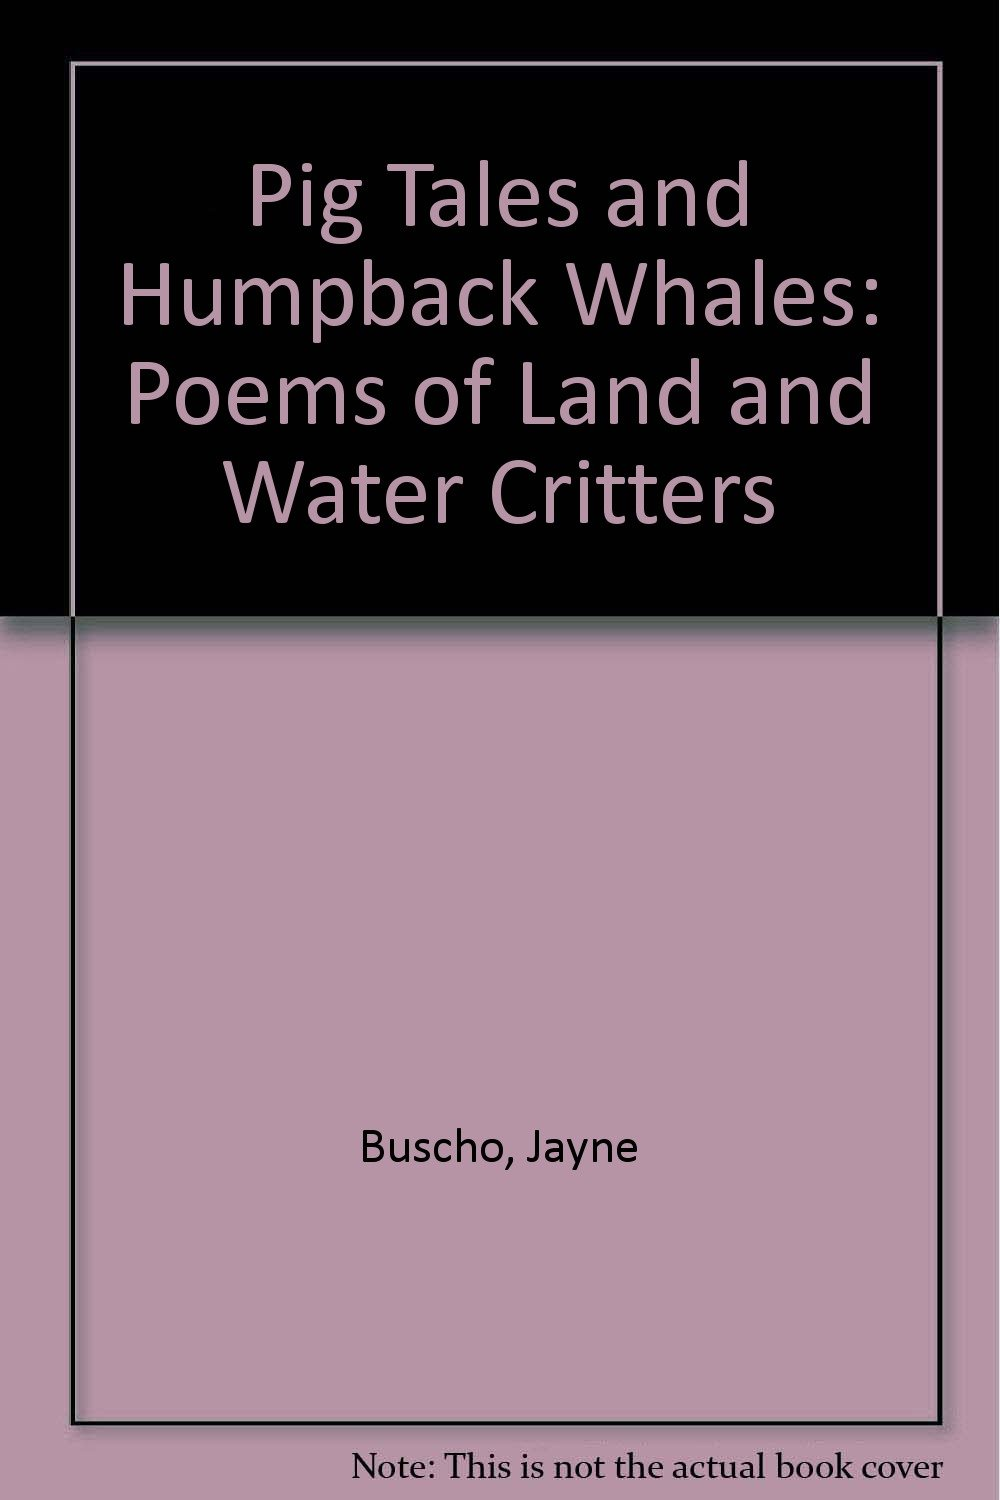 Download Pig Tales and Humpback Whales ebook